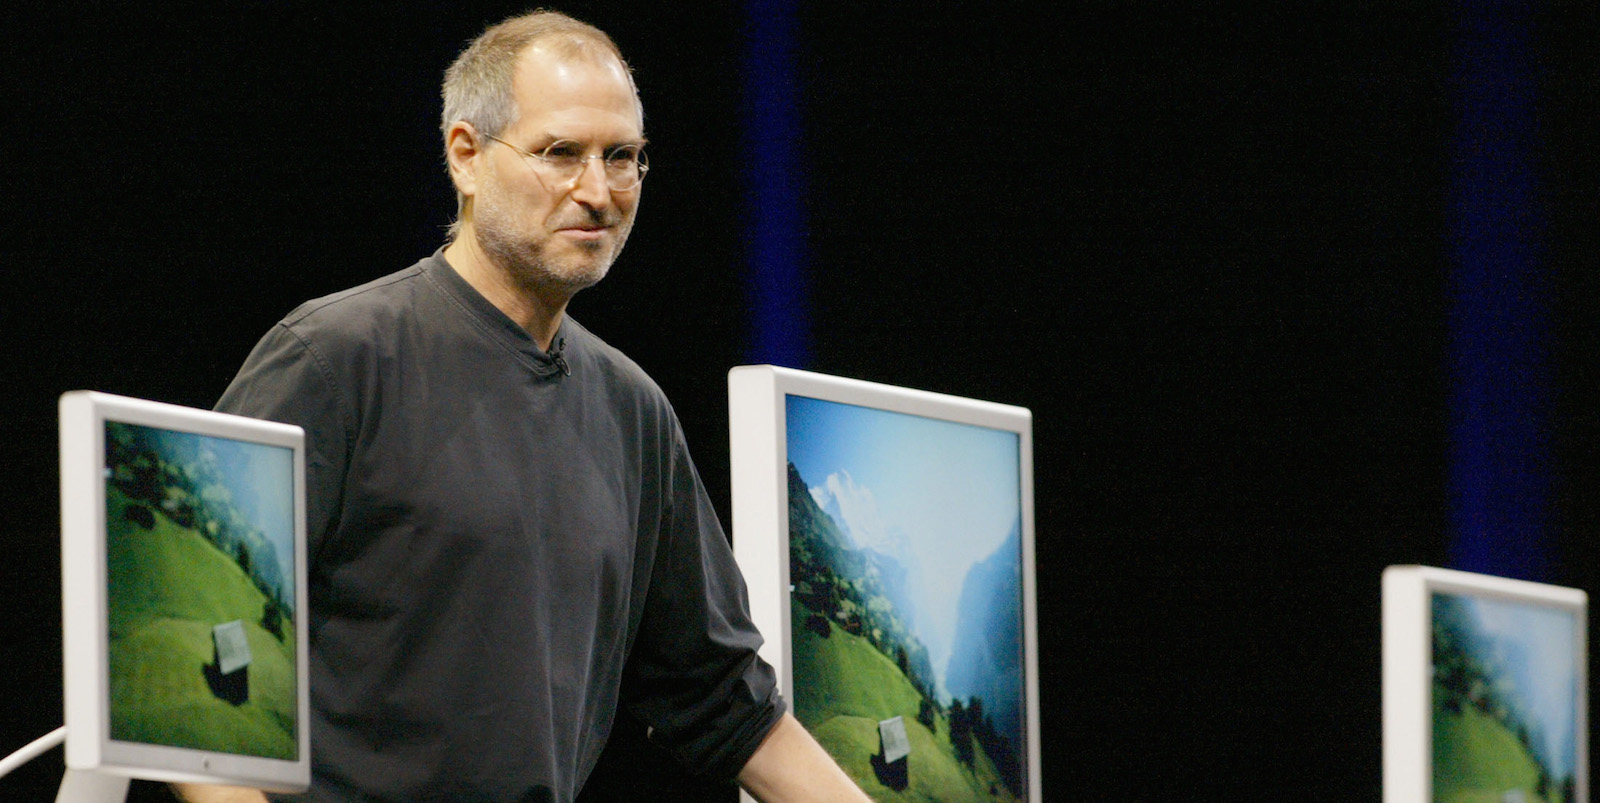 Apple Computer Inc. Chief Executive Steve Jobs stands with several Apple flat panel displays, as he previews the latest version of Apple's Mac OS X operating system called Tiger in San Francisco, California, June 28, 2004. Jobs also introduced a 30-inch flat panel display (C) in a sleeker and trimmer housing, its largest display yet, which adds to the 20-inch (L) and 23-inch displays (R) it already offers. REUTERS/Kimberly White  KW - RTR5EP7